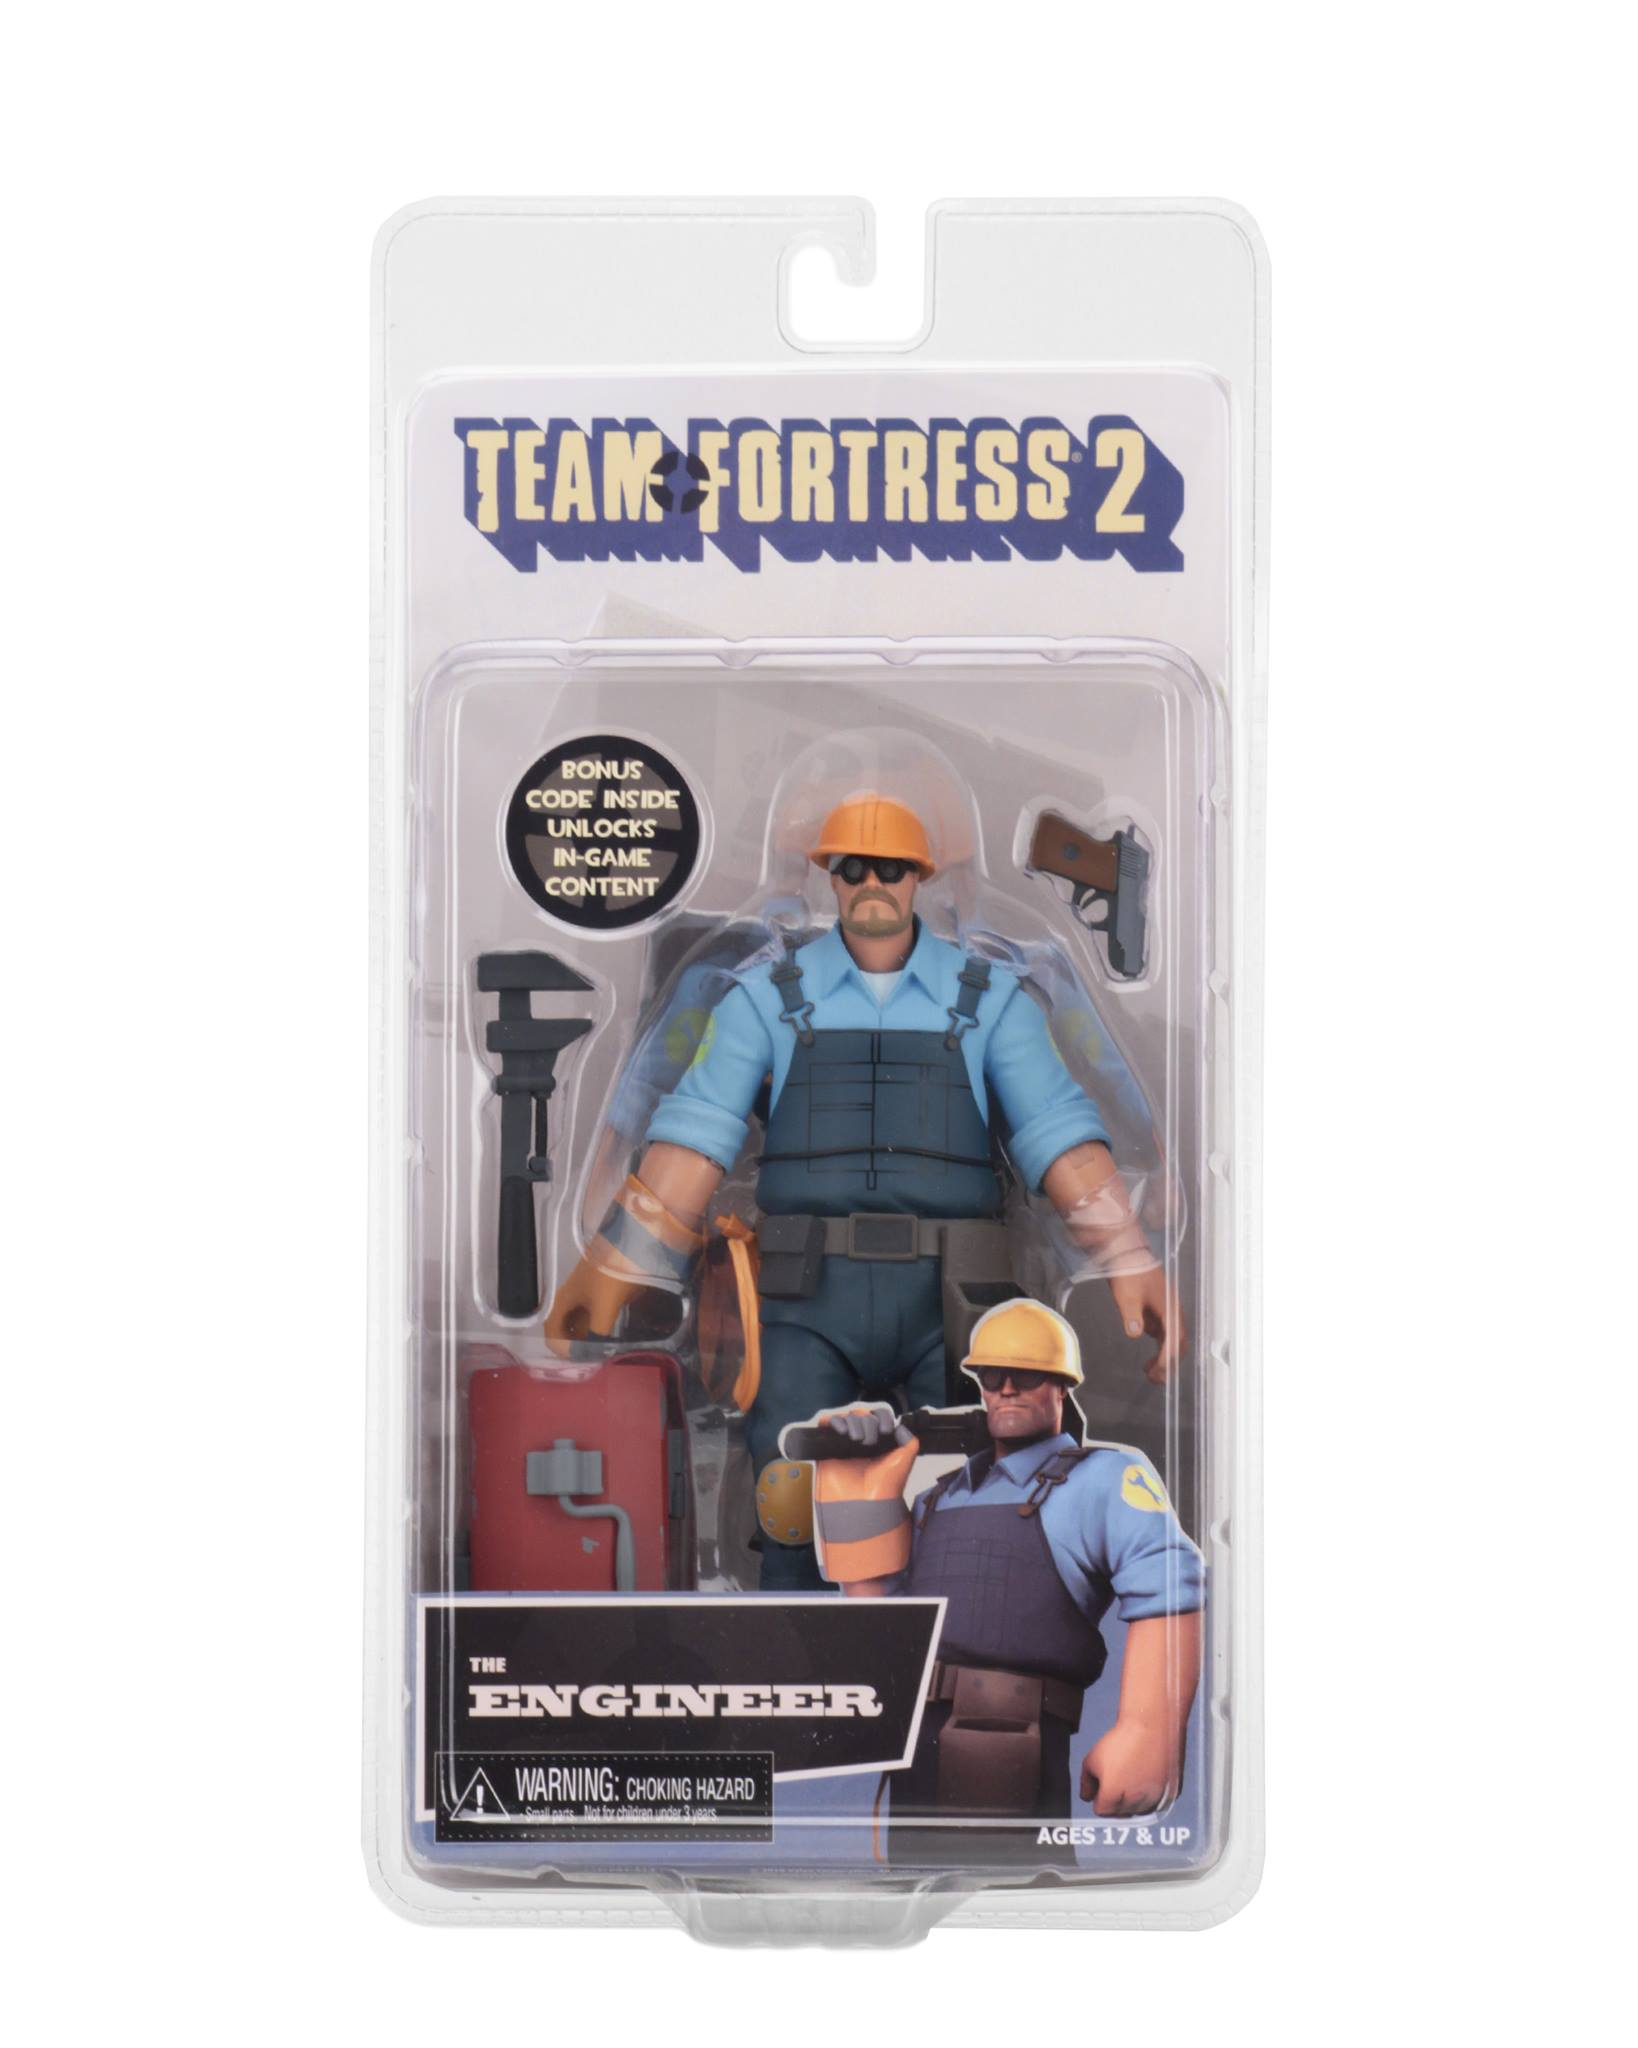 NECA Team Fortress 2 Series 3 5 BLU Figures Final Packaging Photos